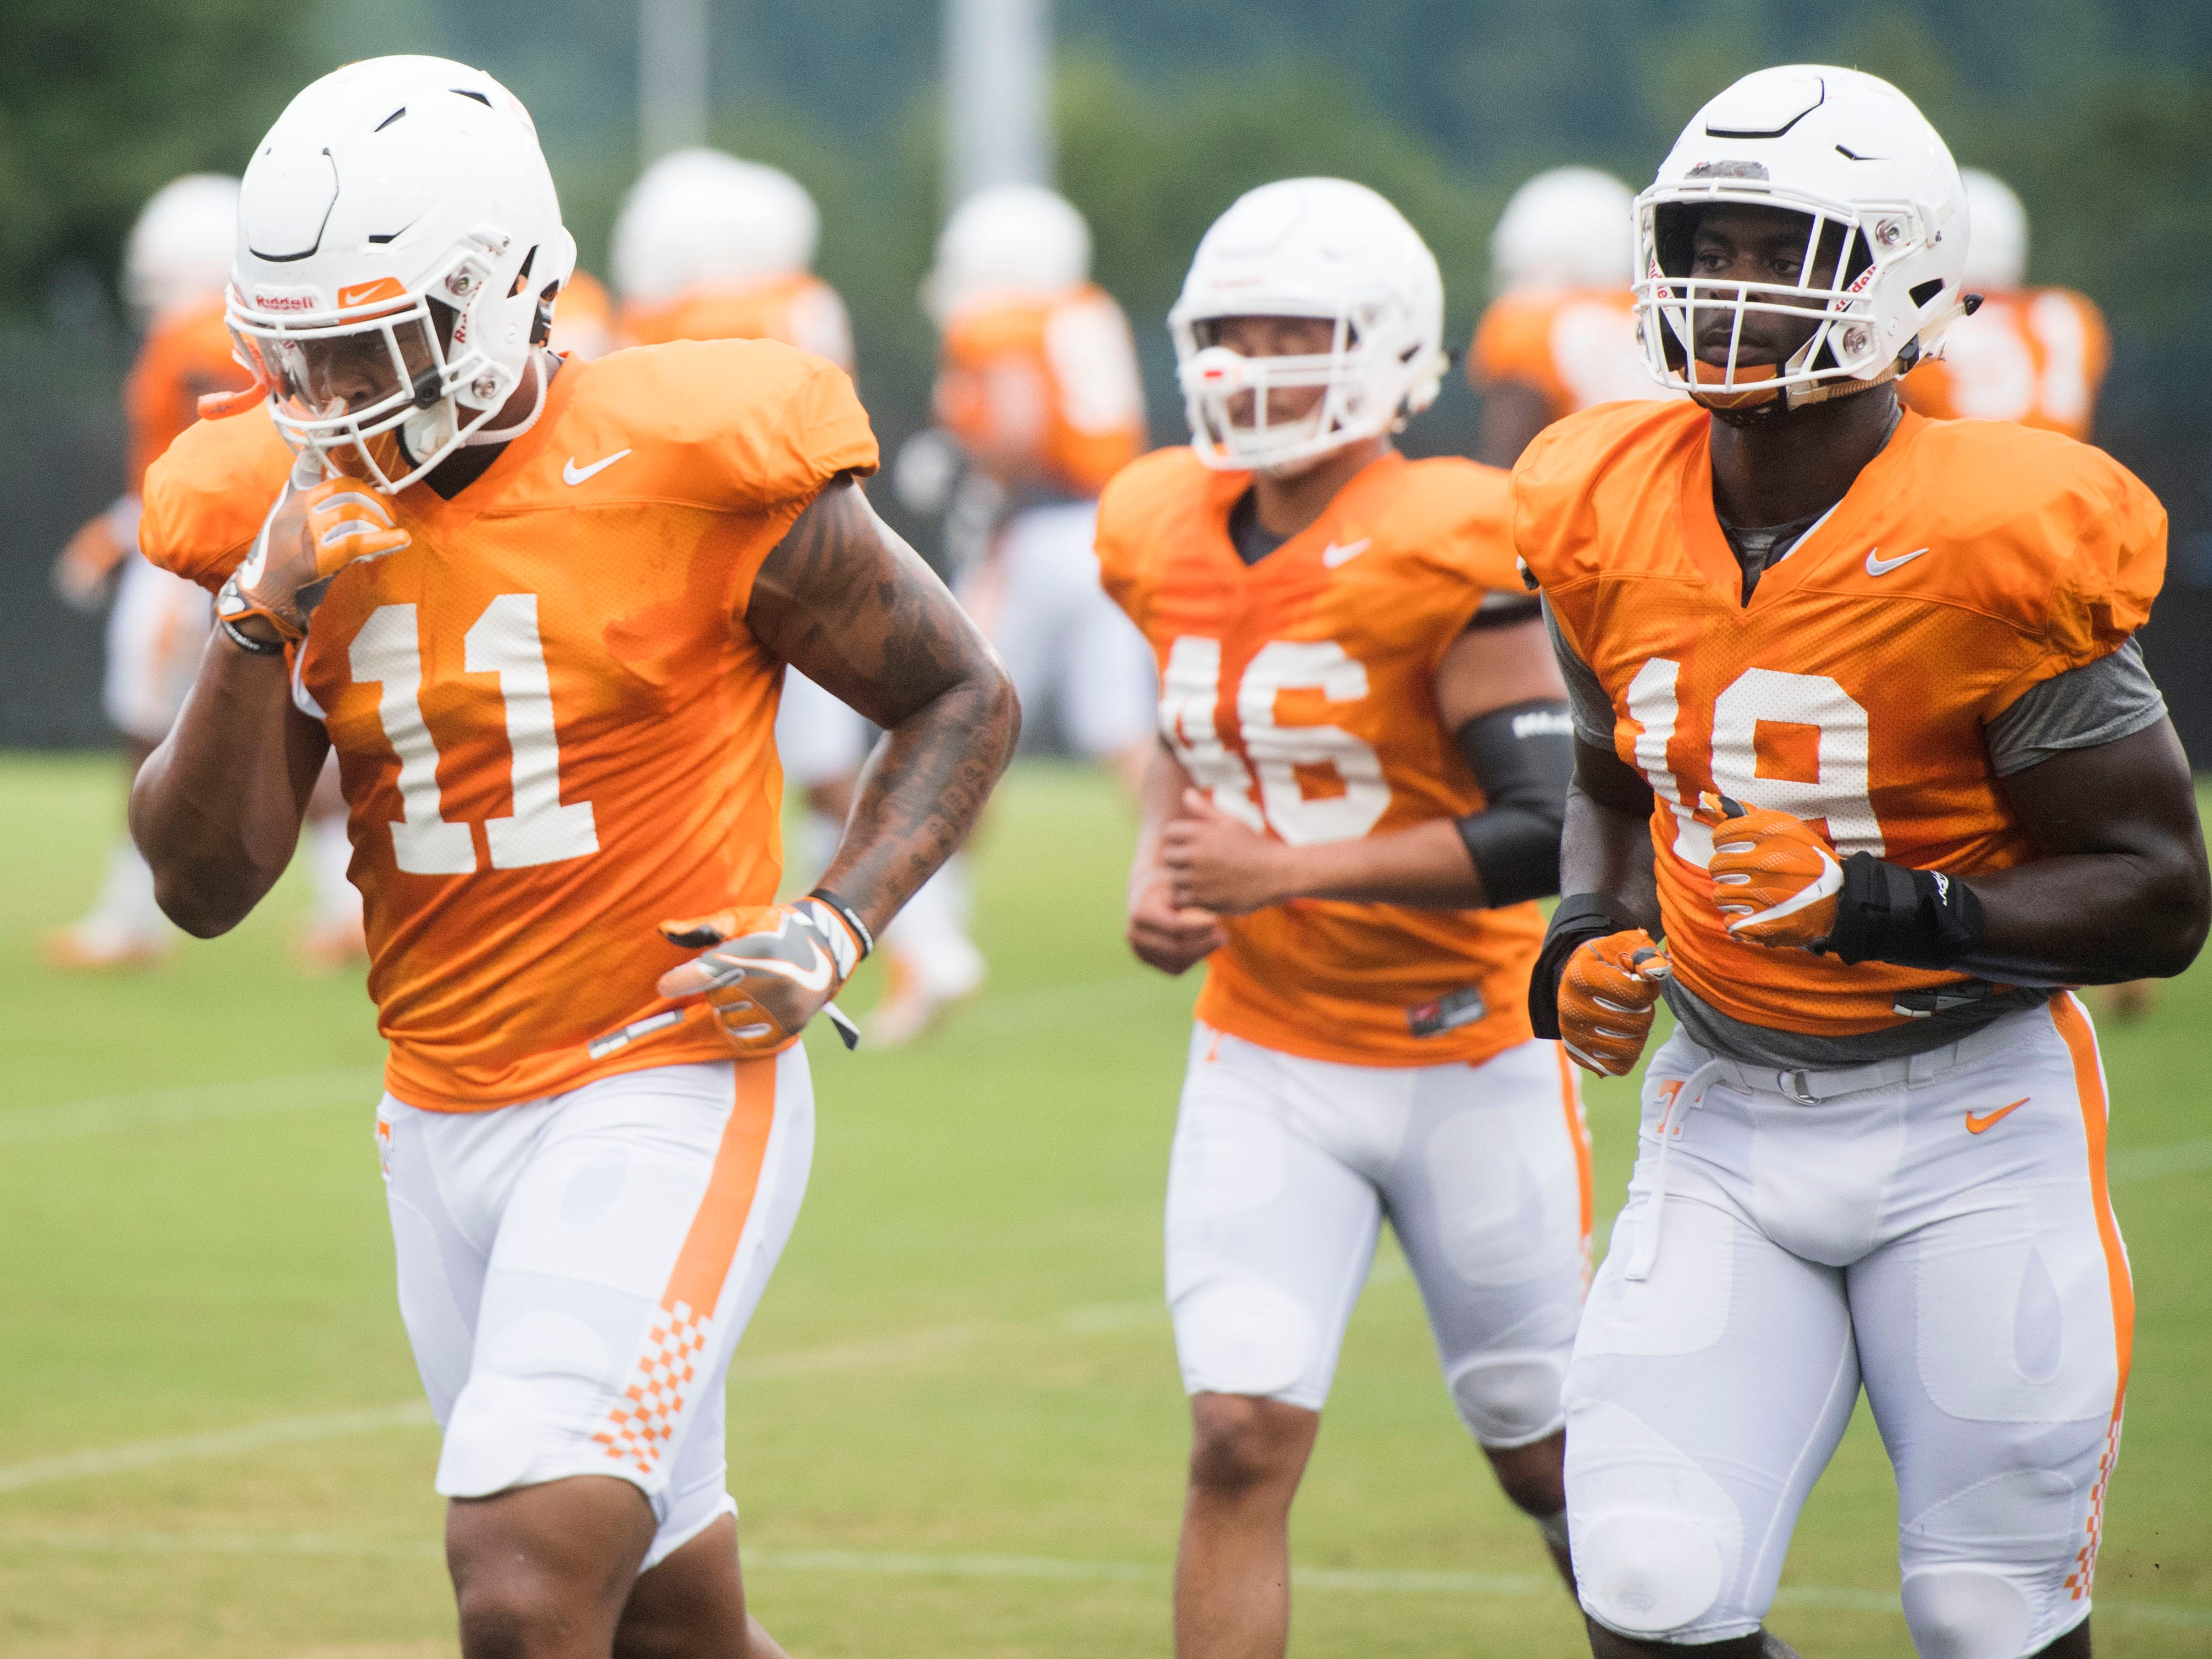 Tennessee linebackers, from left, Austin Smith, Joshua Warren, and Darrell Taylor during football practice at Haslam Field on Thursday, August 9, 2018.